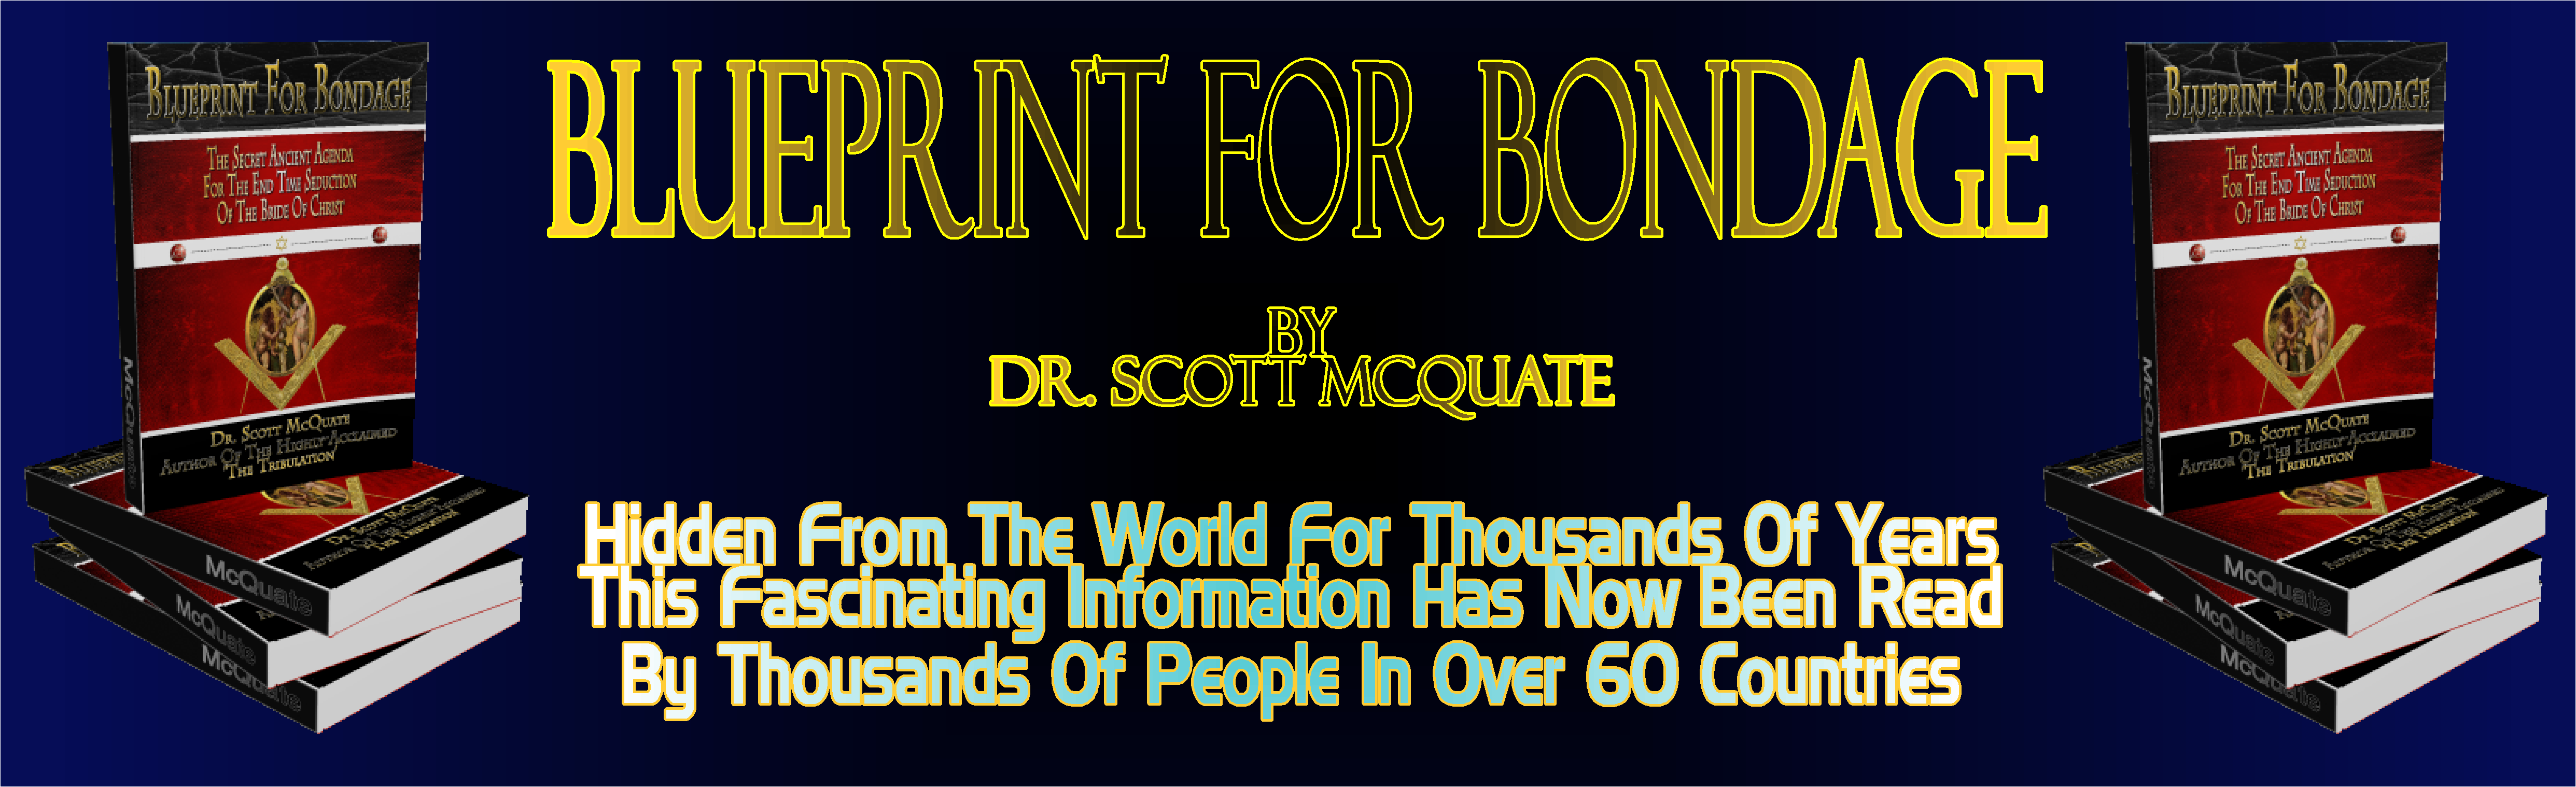 Blueprint For Bondage By Dr. Scott McQuate